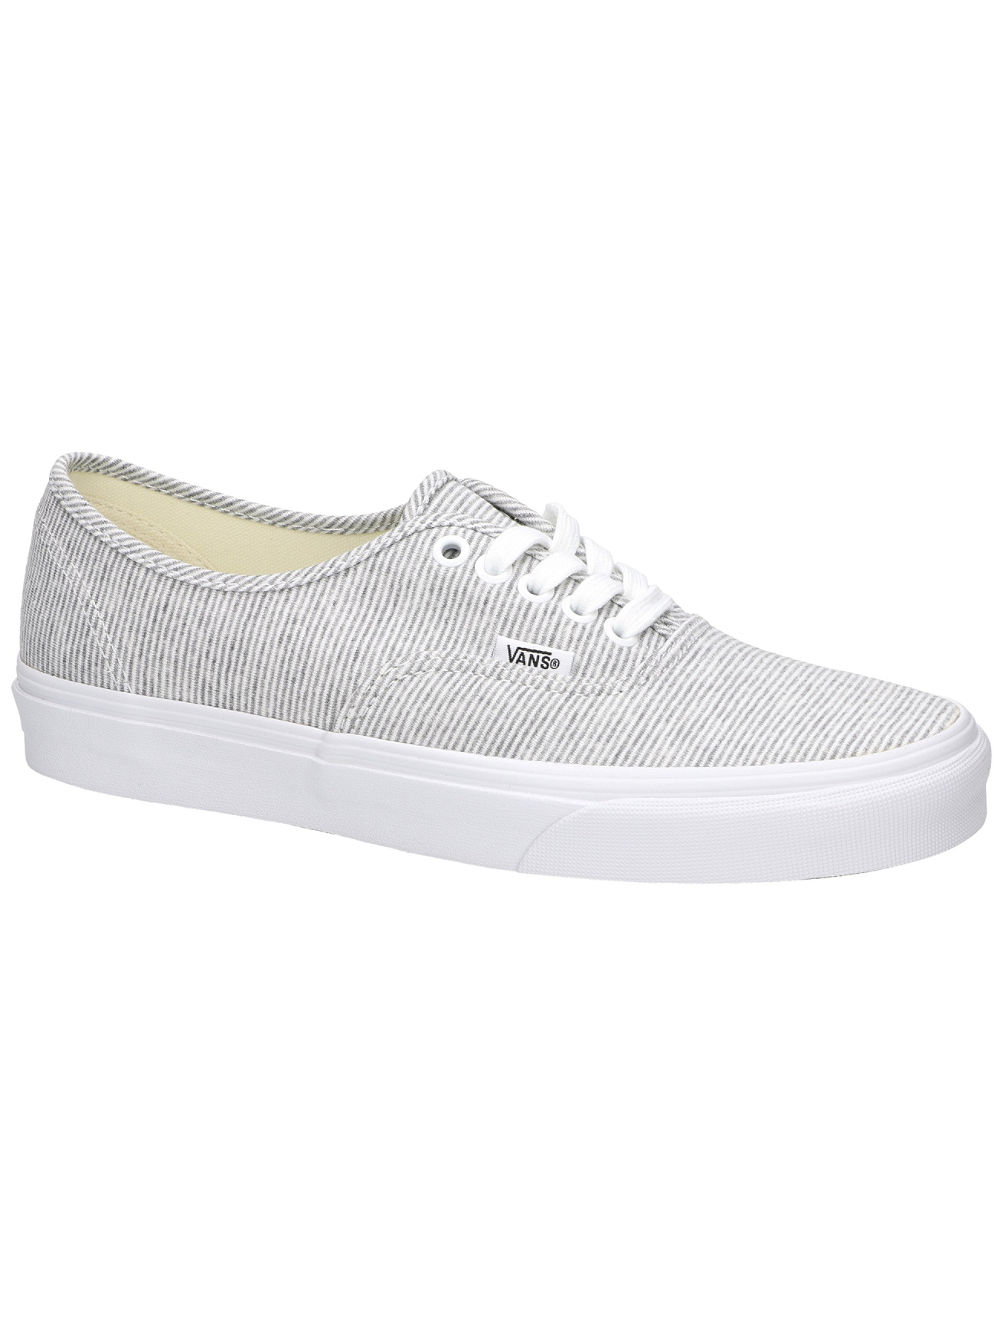 99b208f6a3a9 Buy Vans Jersey Authentic Sneakers online at blue-tomato.com